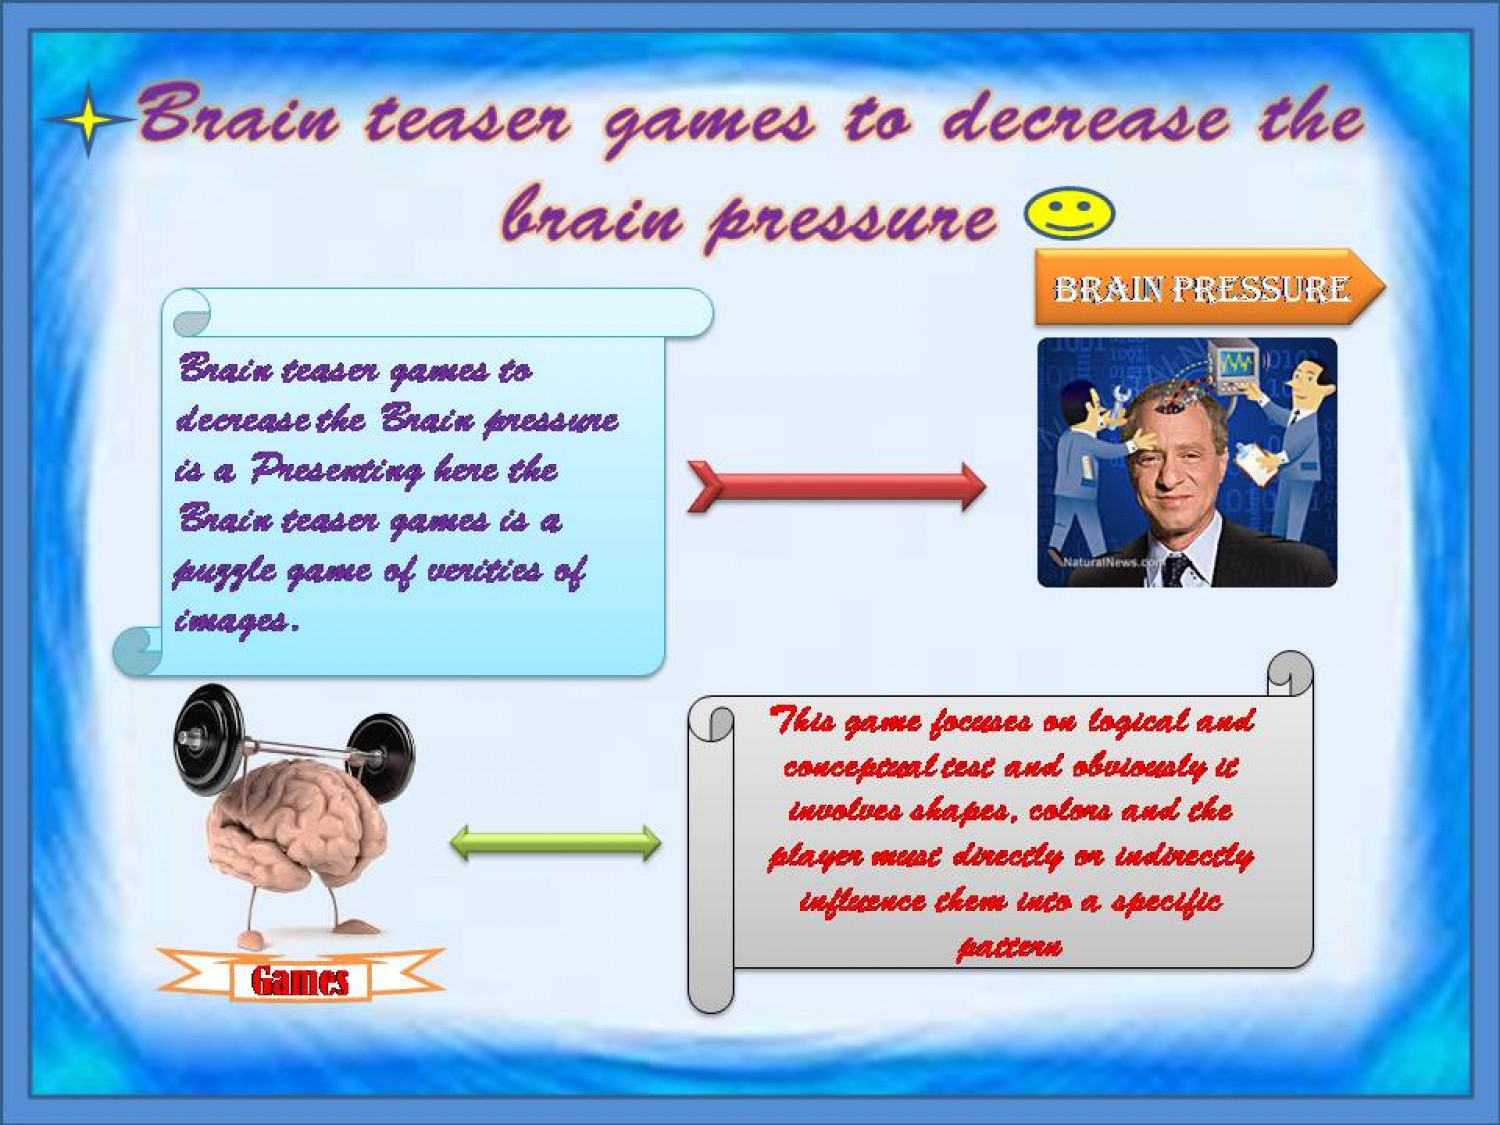 Visual Brain Teaser Brain teaser games to decrease the brain pressure ...